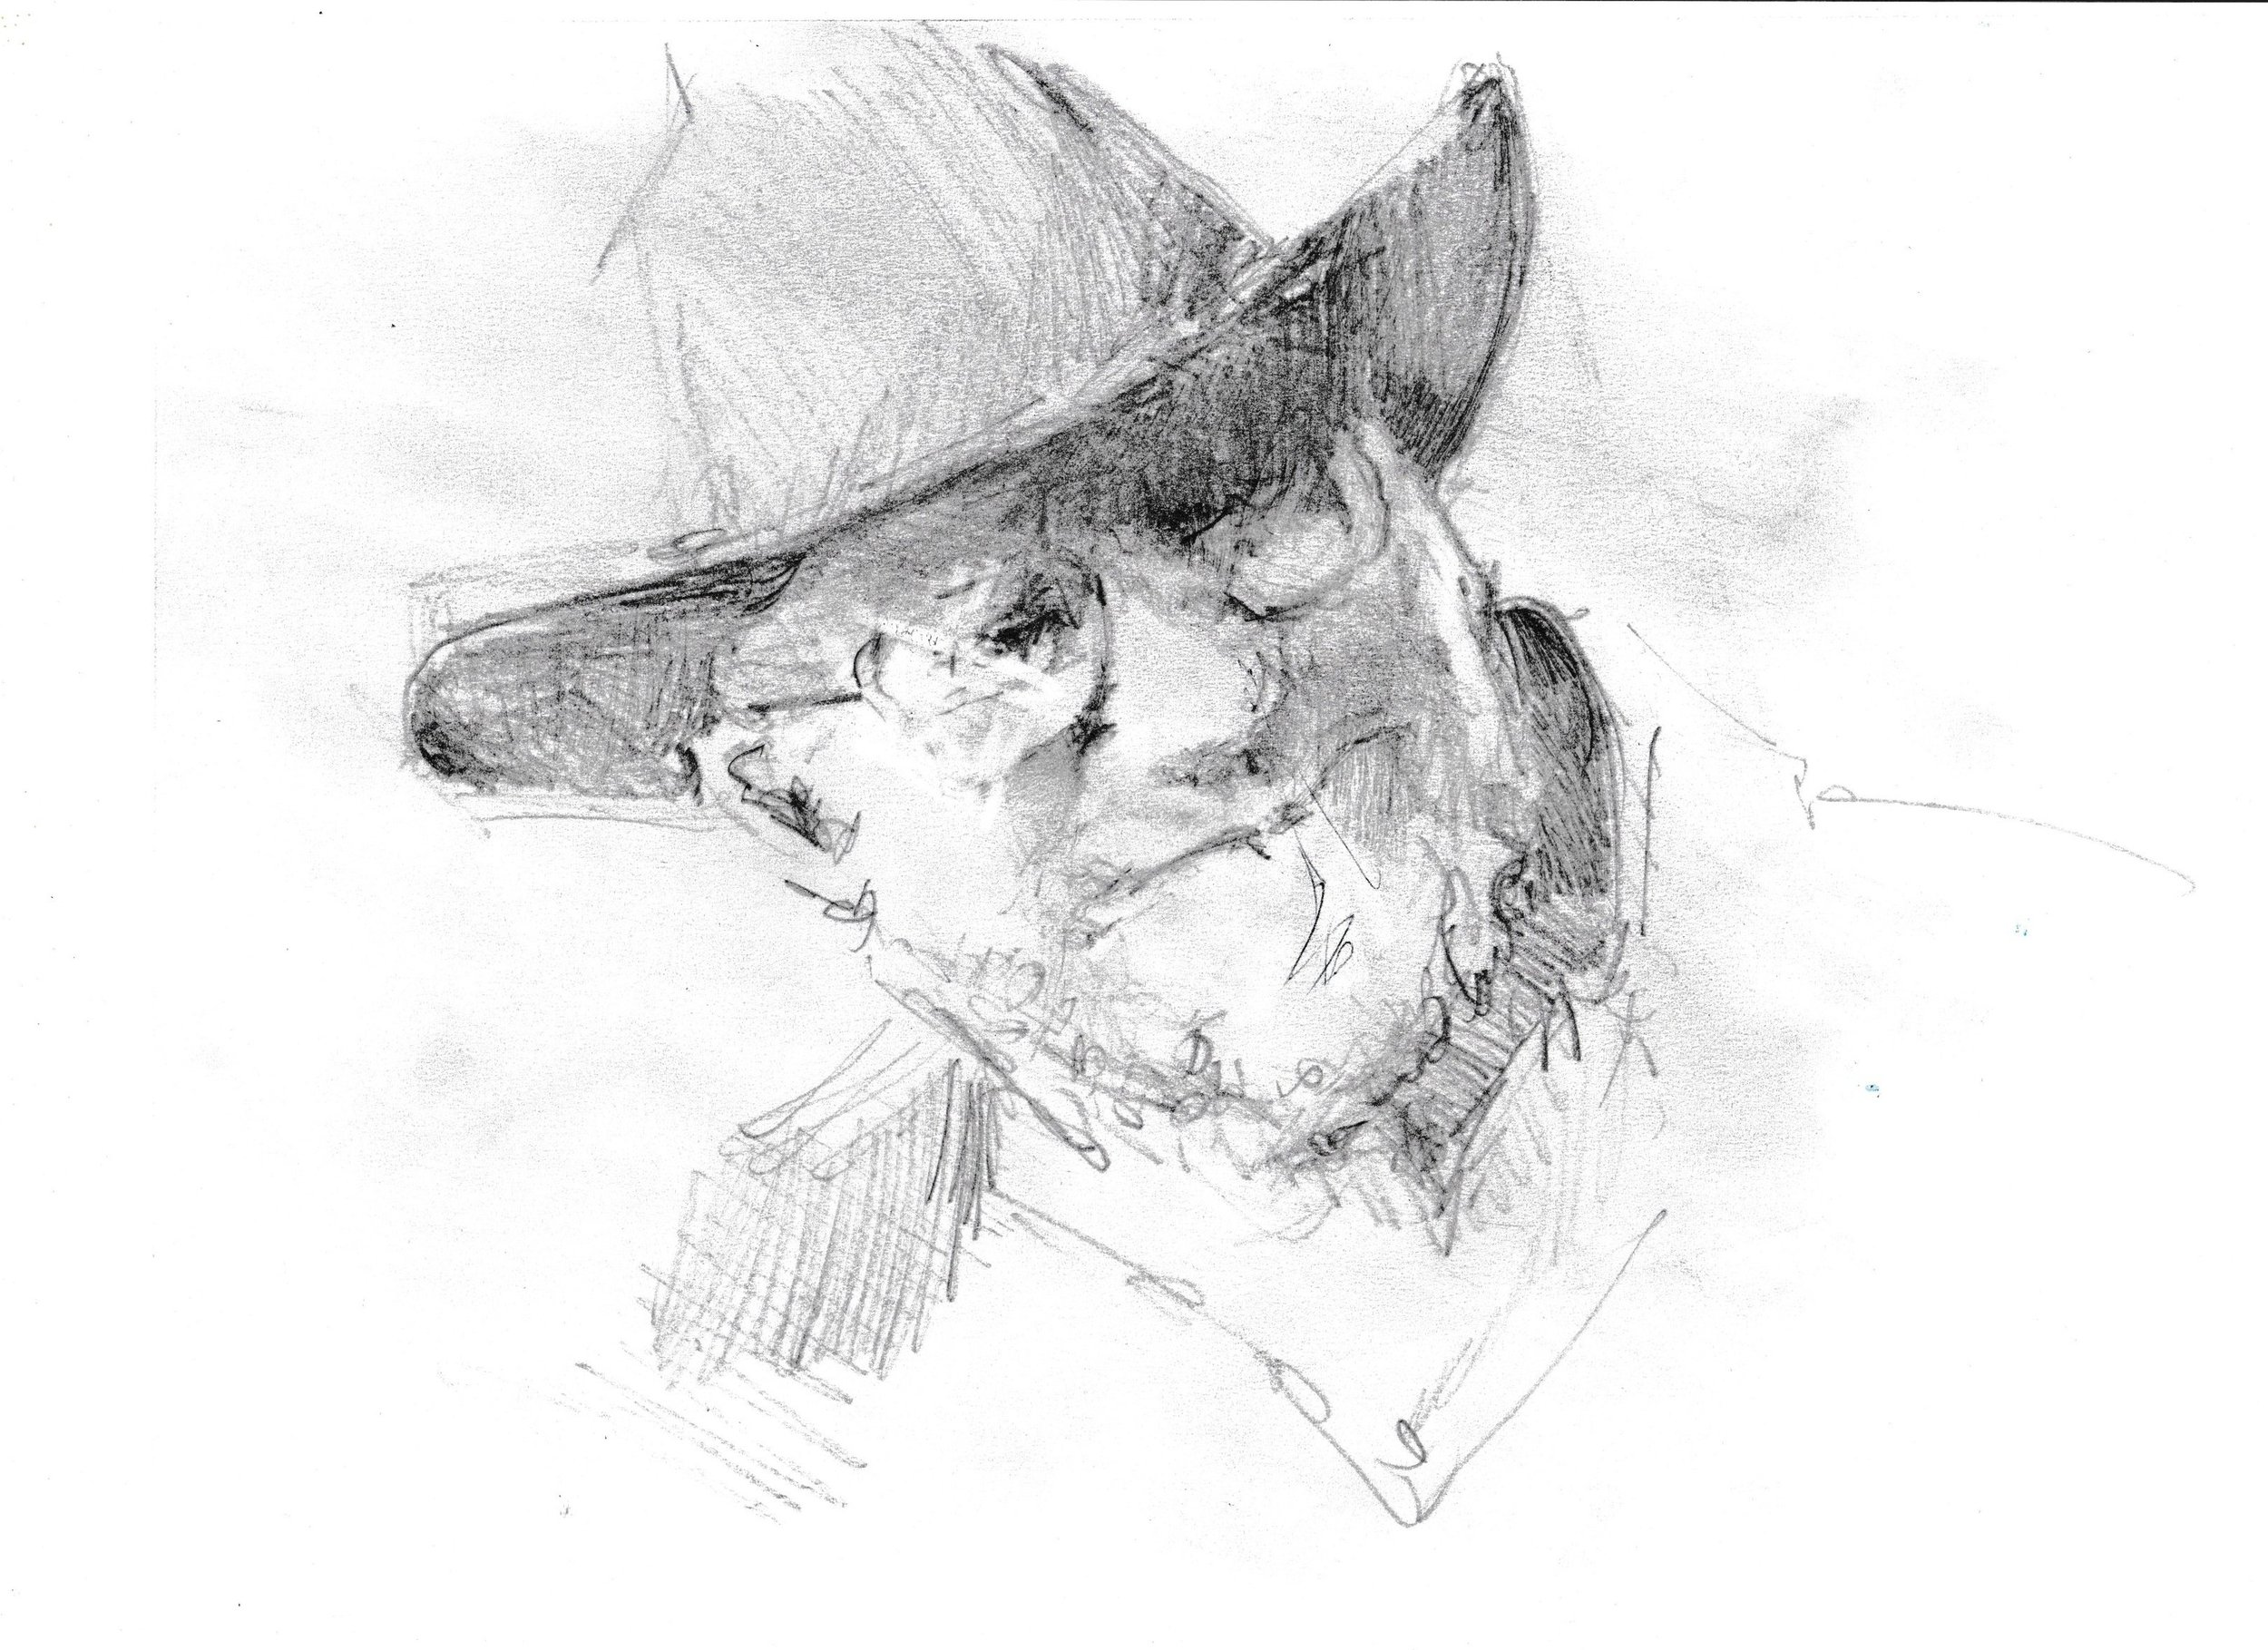 Sketch of Harrison Groutage by Rett Ashby